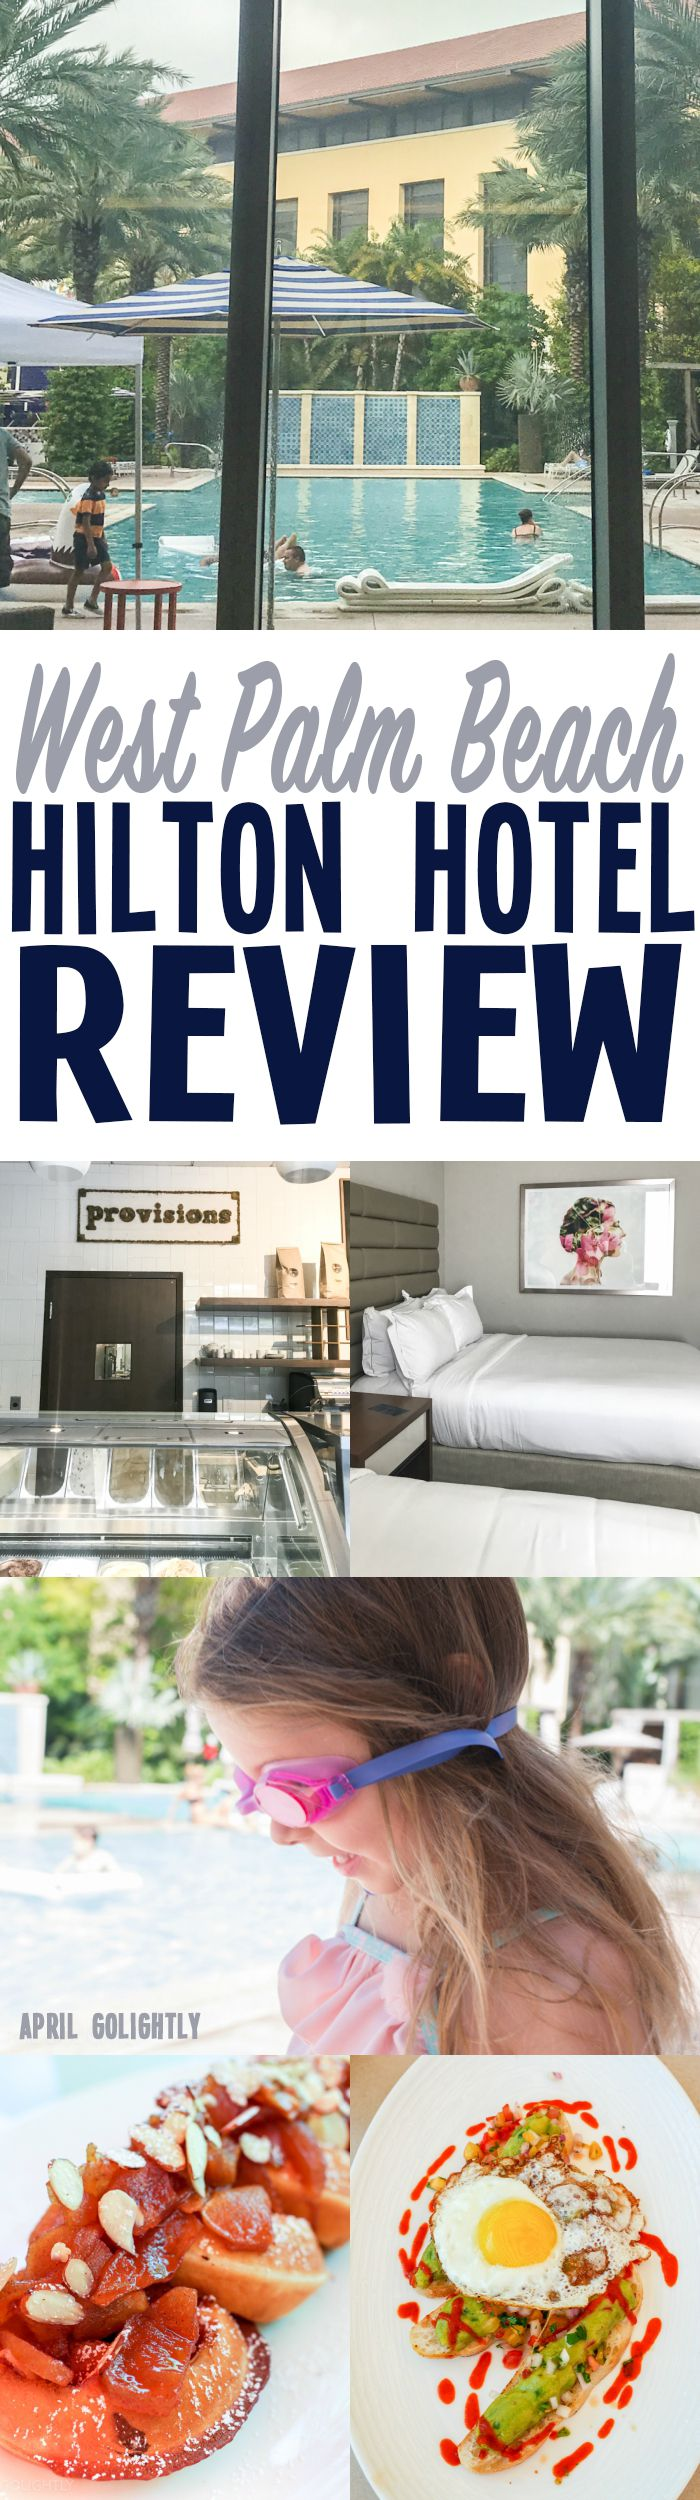 Hilton Downtown West Palm Beach Hotel Review with 7 reasons you will love staying at this resort style hotel in South Florida